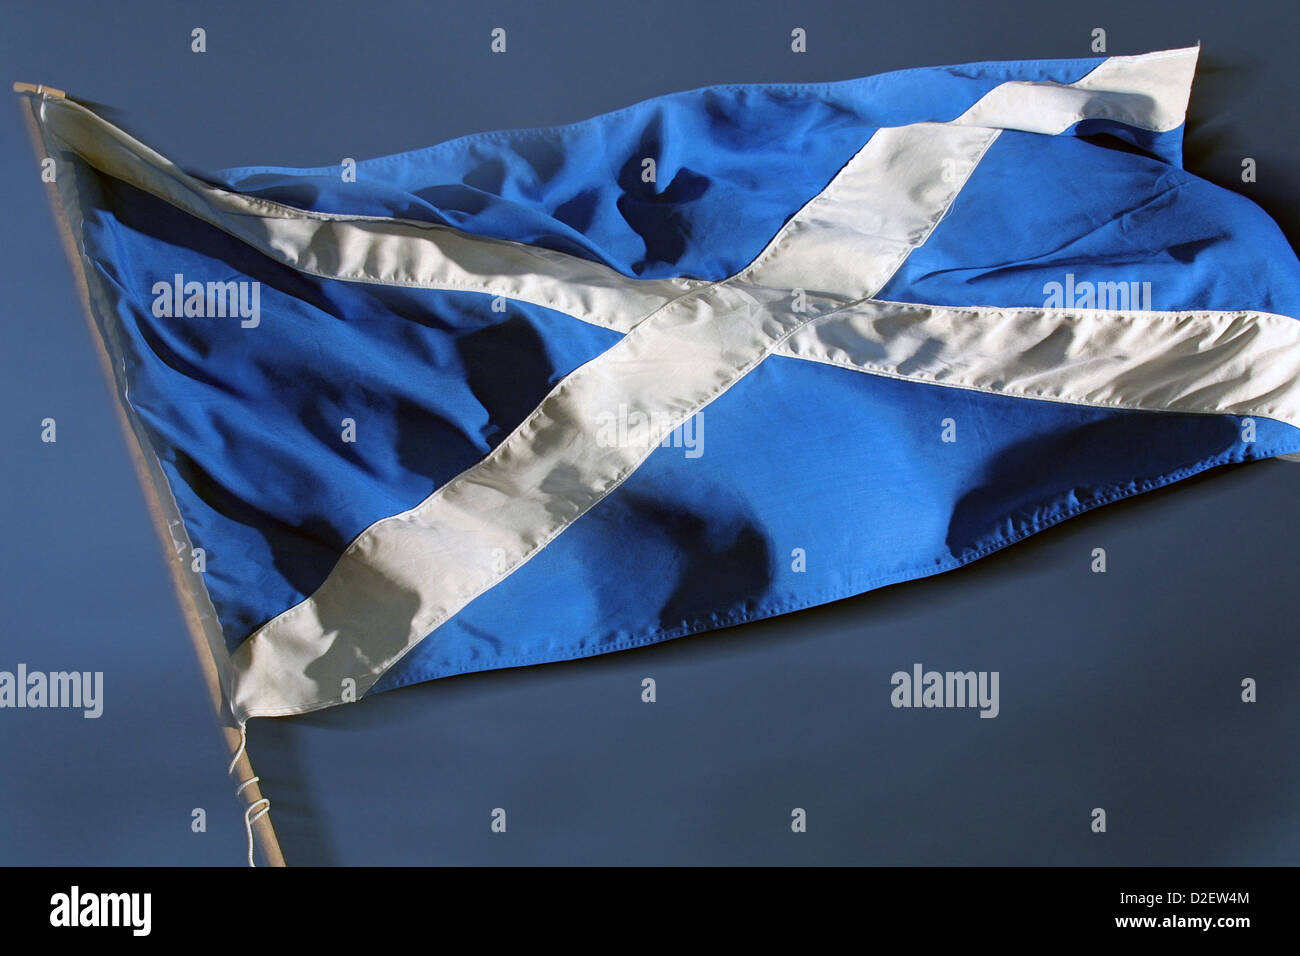 The St. Andrews Cross, the national flag of Scotland, seen against a dark sky - Stock Image